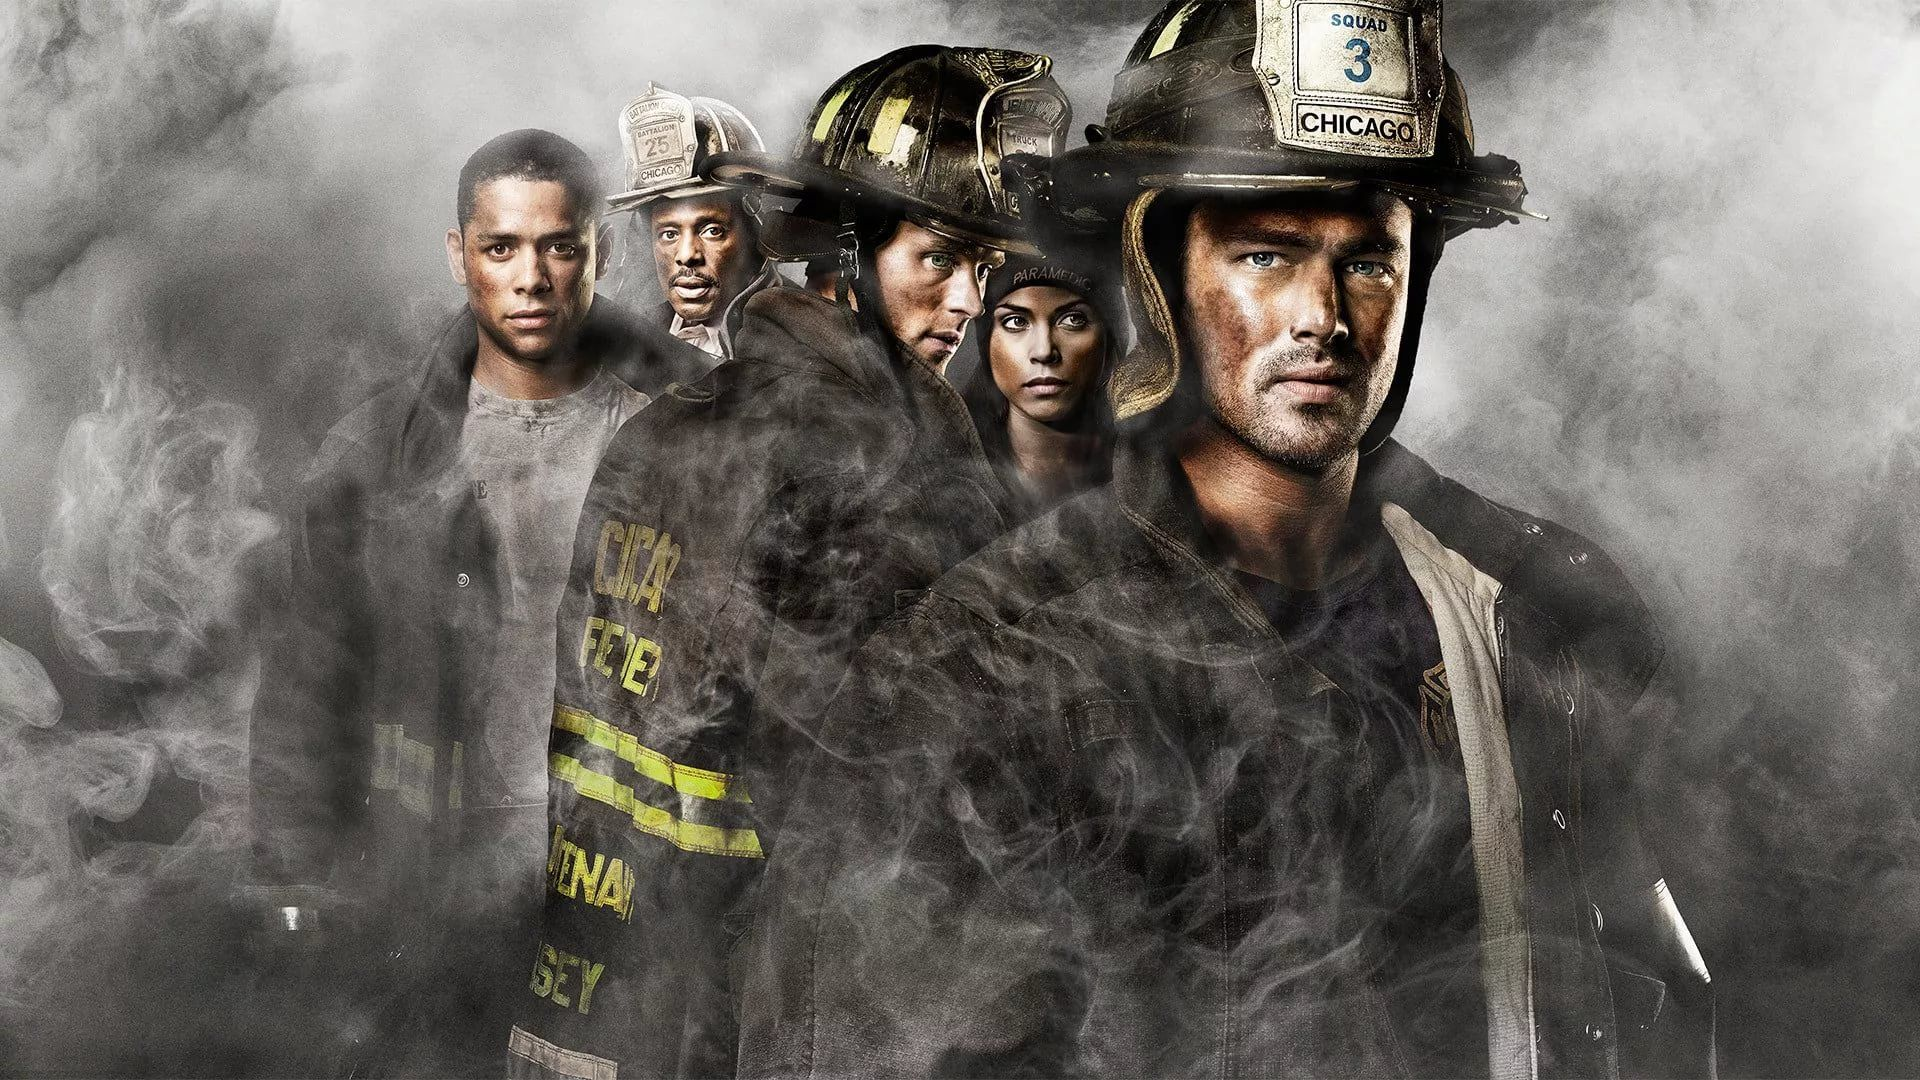 Firefighter Pic